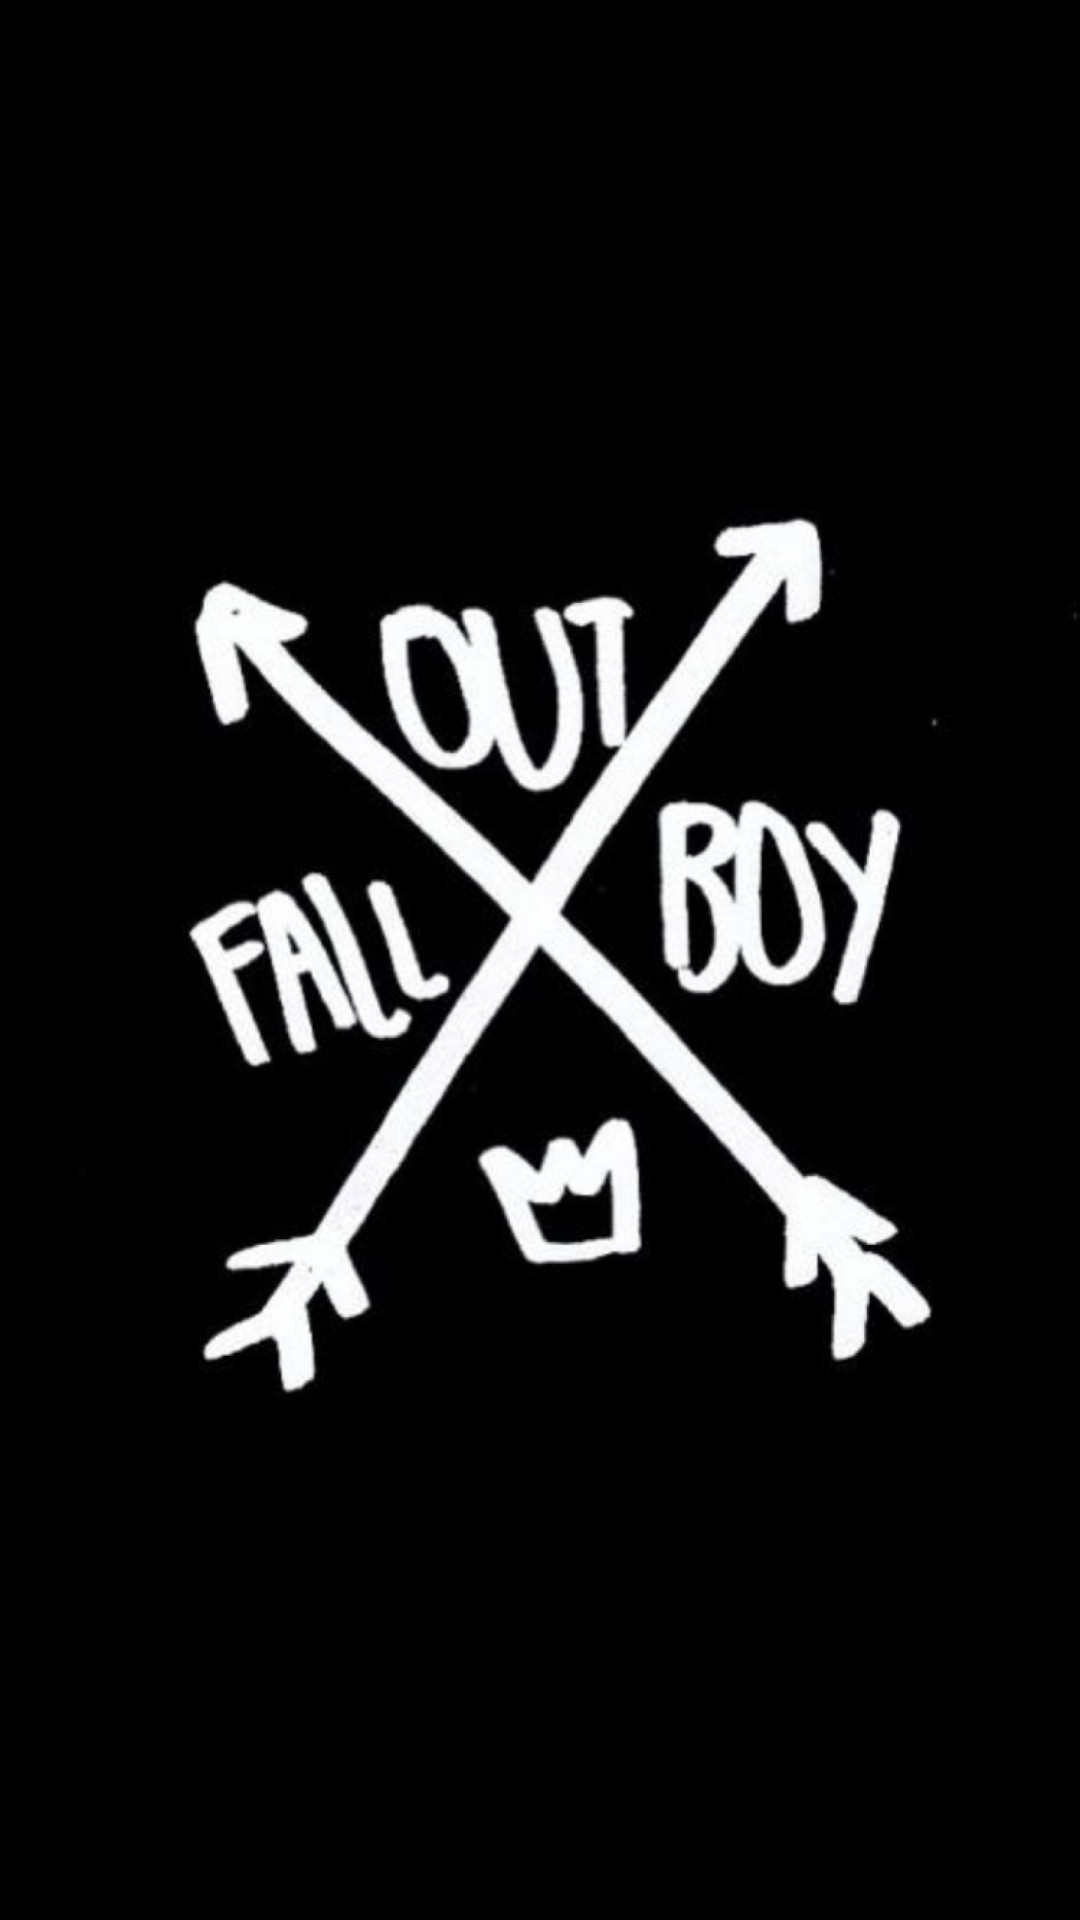 1920x1080 Fall Out Boy Phone Wallpaper Tumblr 1500Af 1000 Wallpapers 35